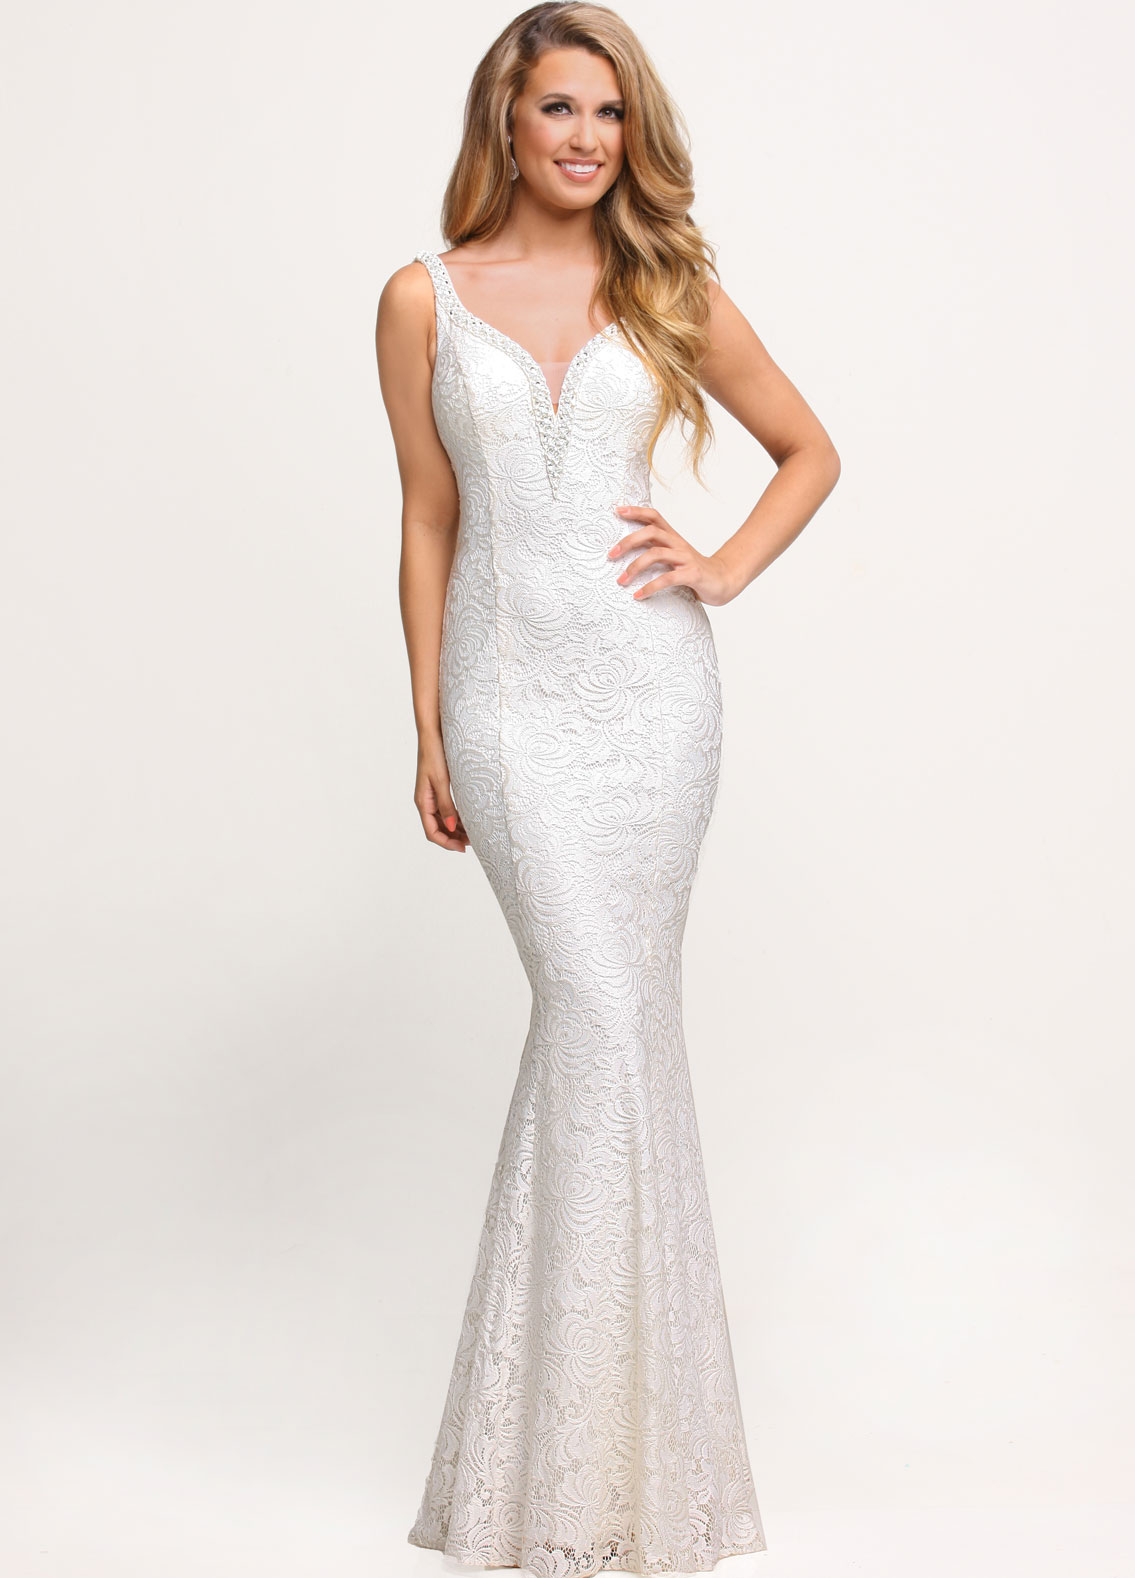 Prom Dresses & Formal Gowns | Sparkle Collection